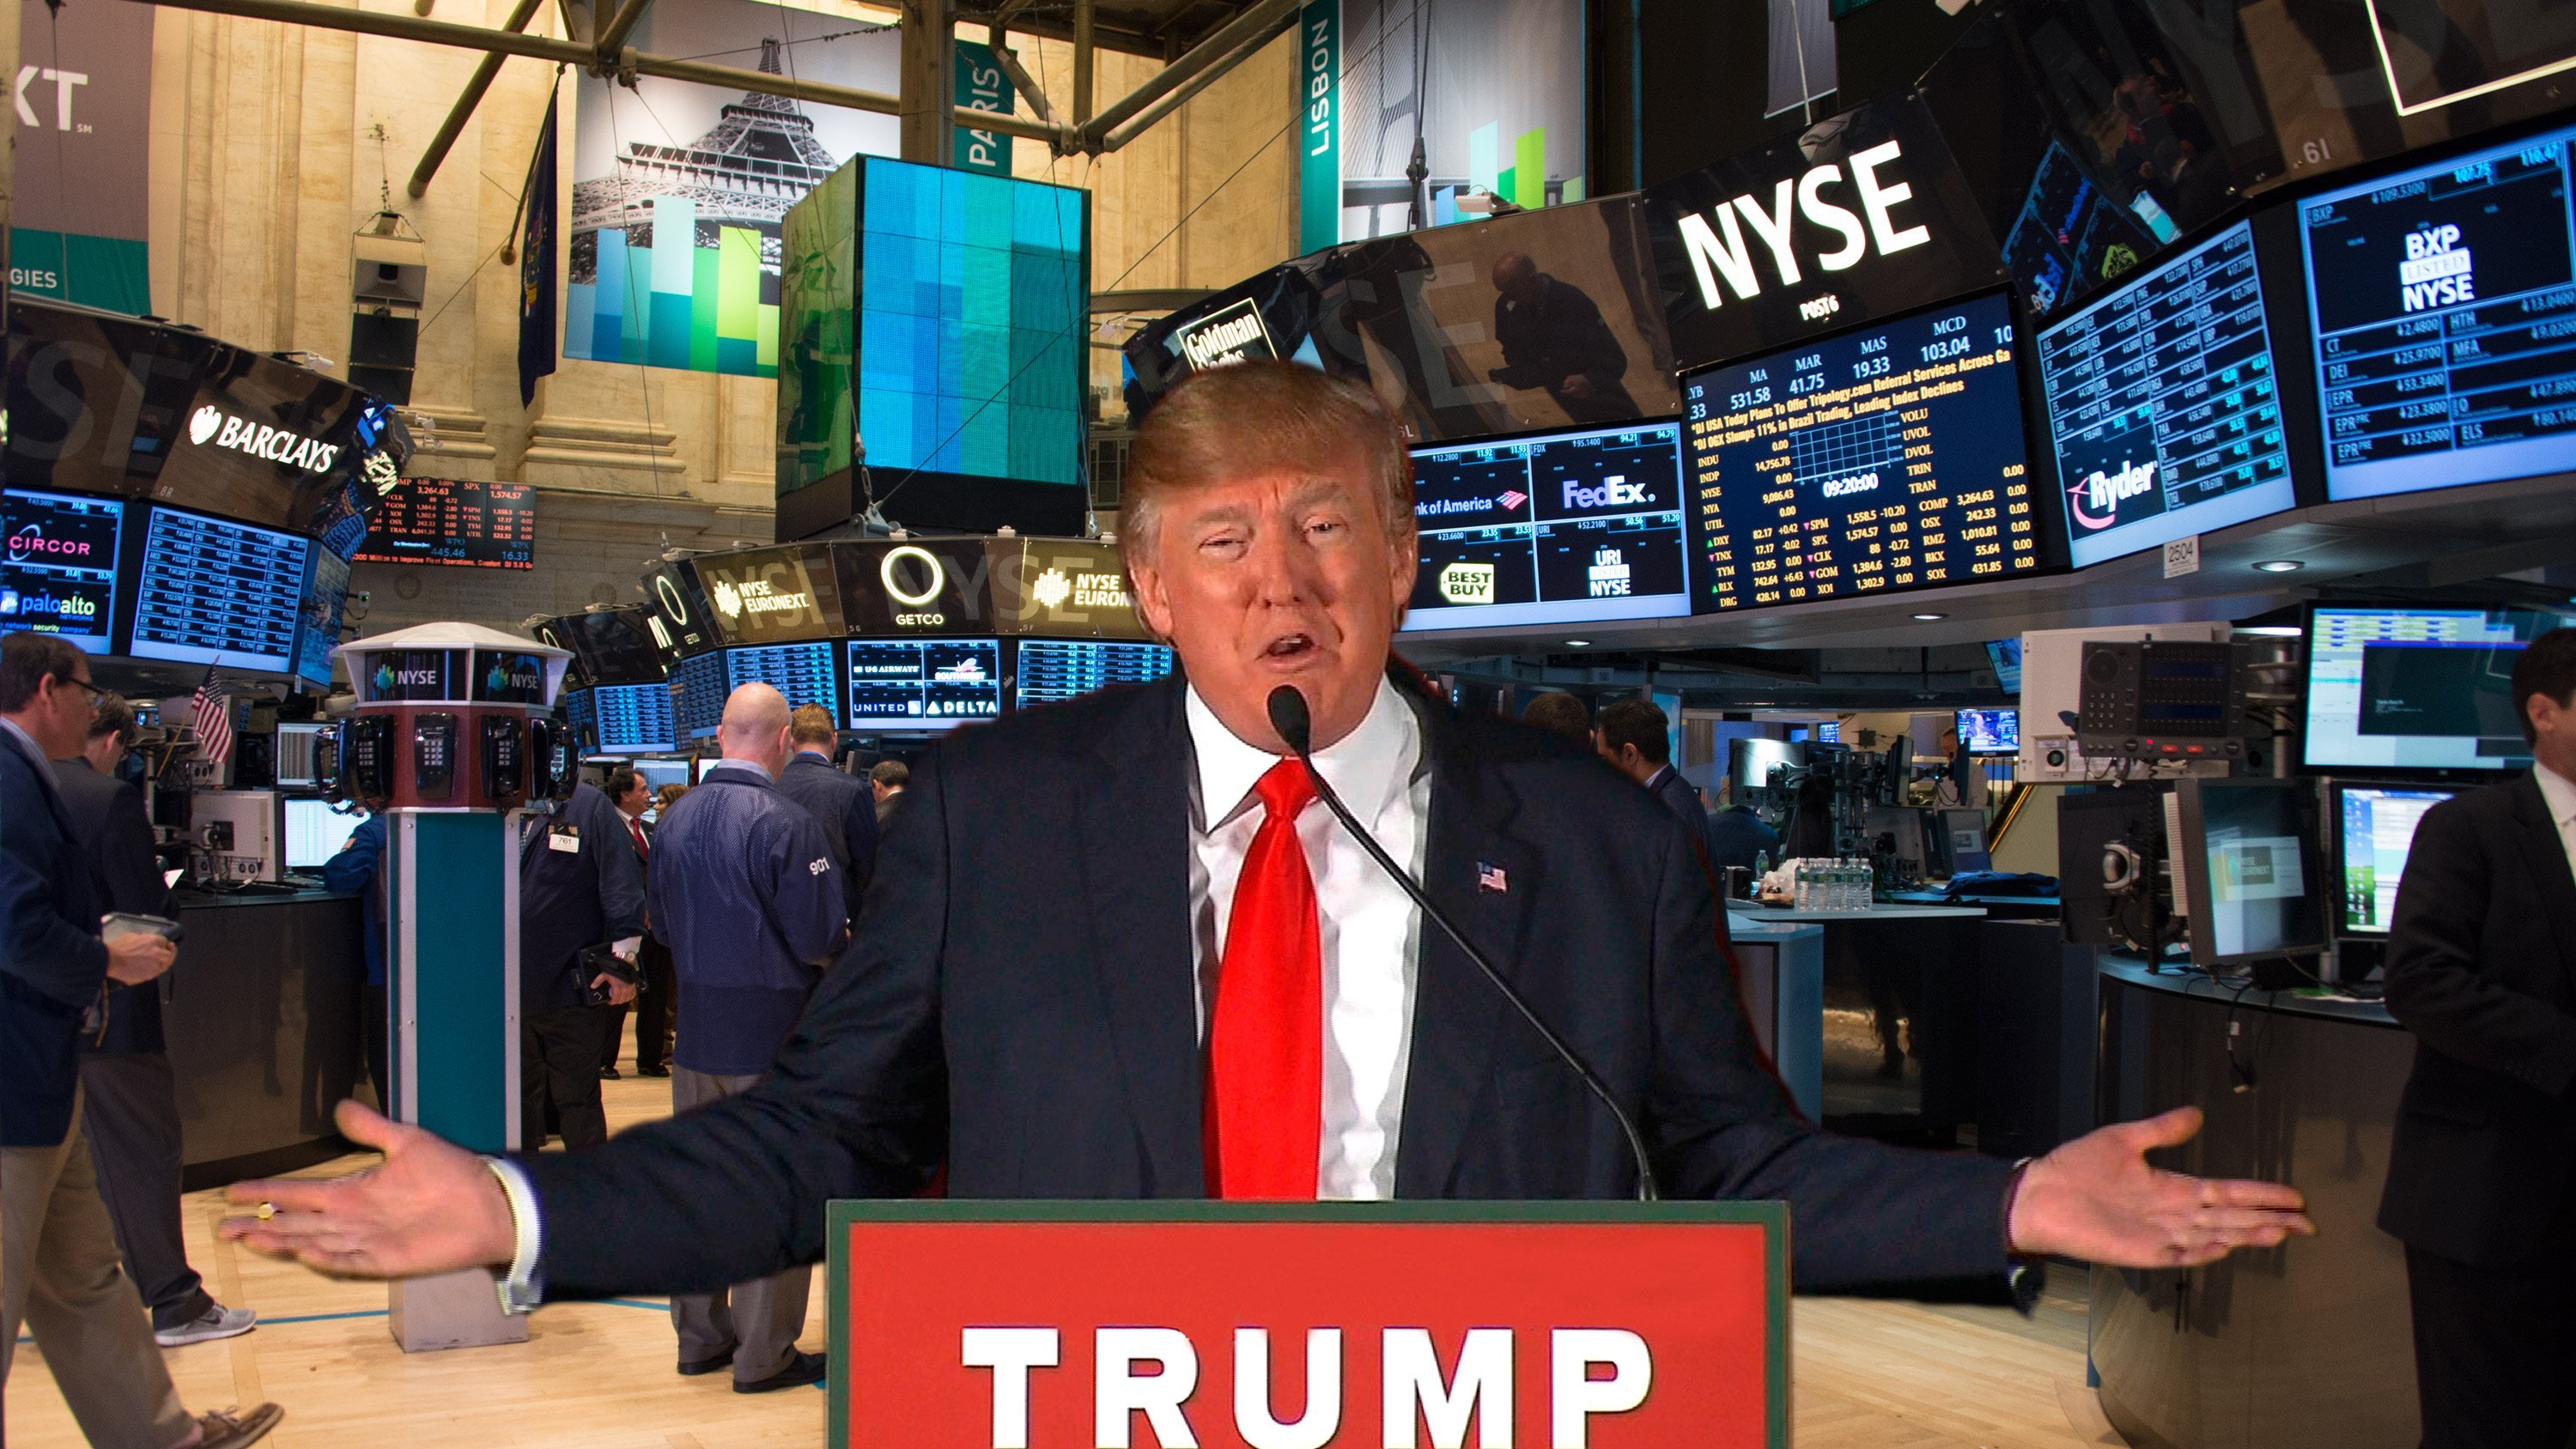 Wall Street is in heaven these days. Donald Trump's surprise election has led to a rally, carrying the Dow above 19,000 for the first time ever.